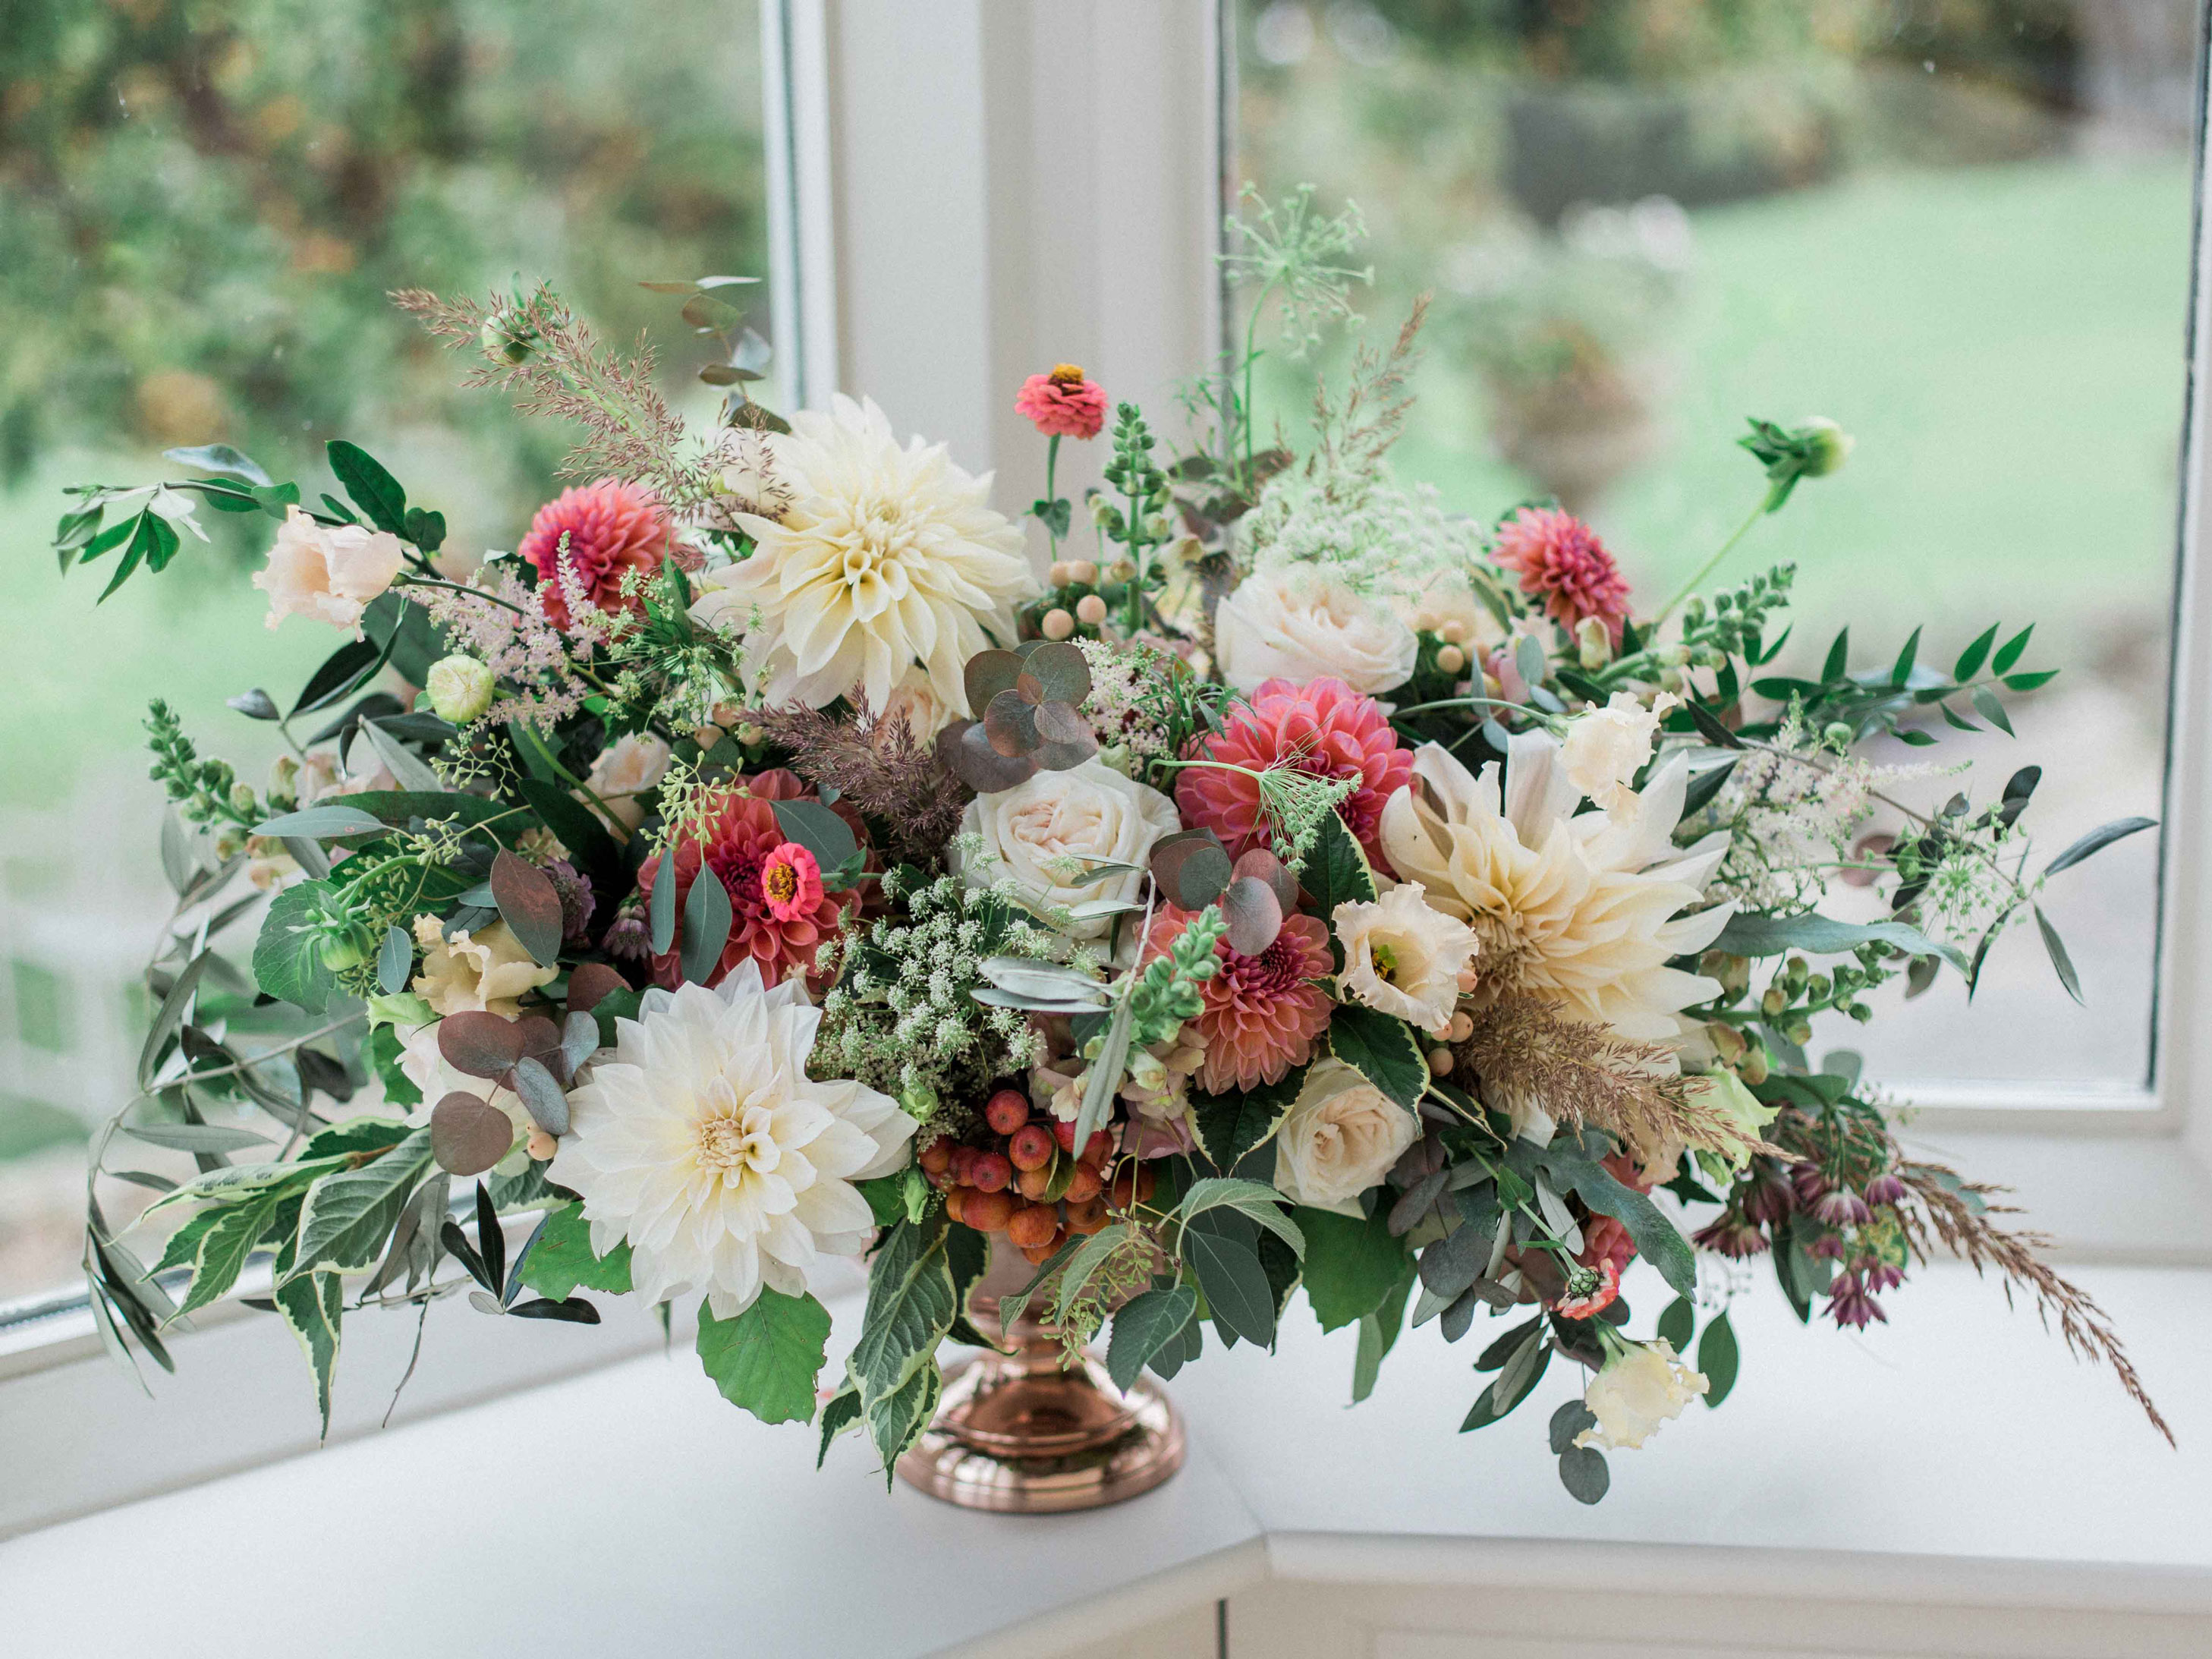 sarah-harper-floral-design-luxury-wedding-florist-flowers-oxfordshite-cotsworlds-gallery-hello